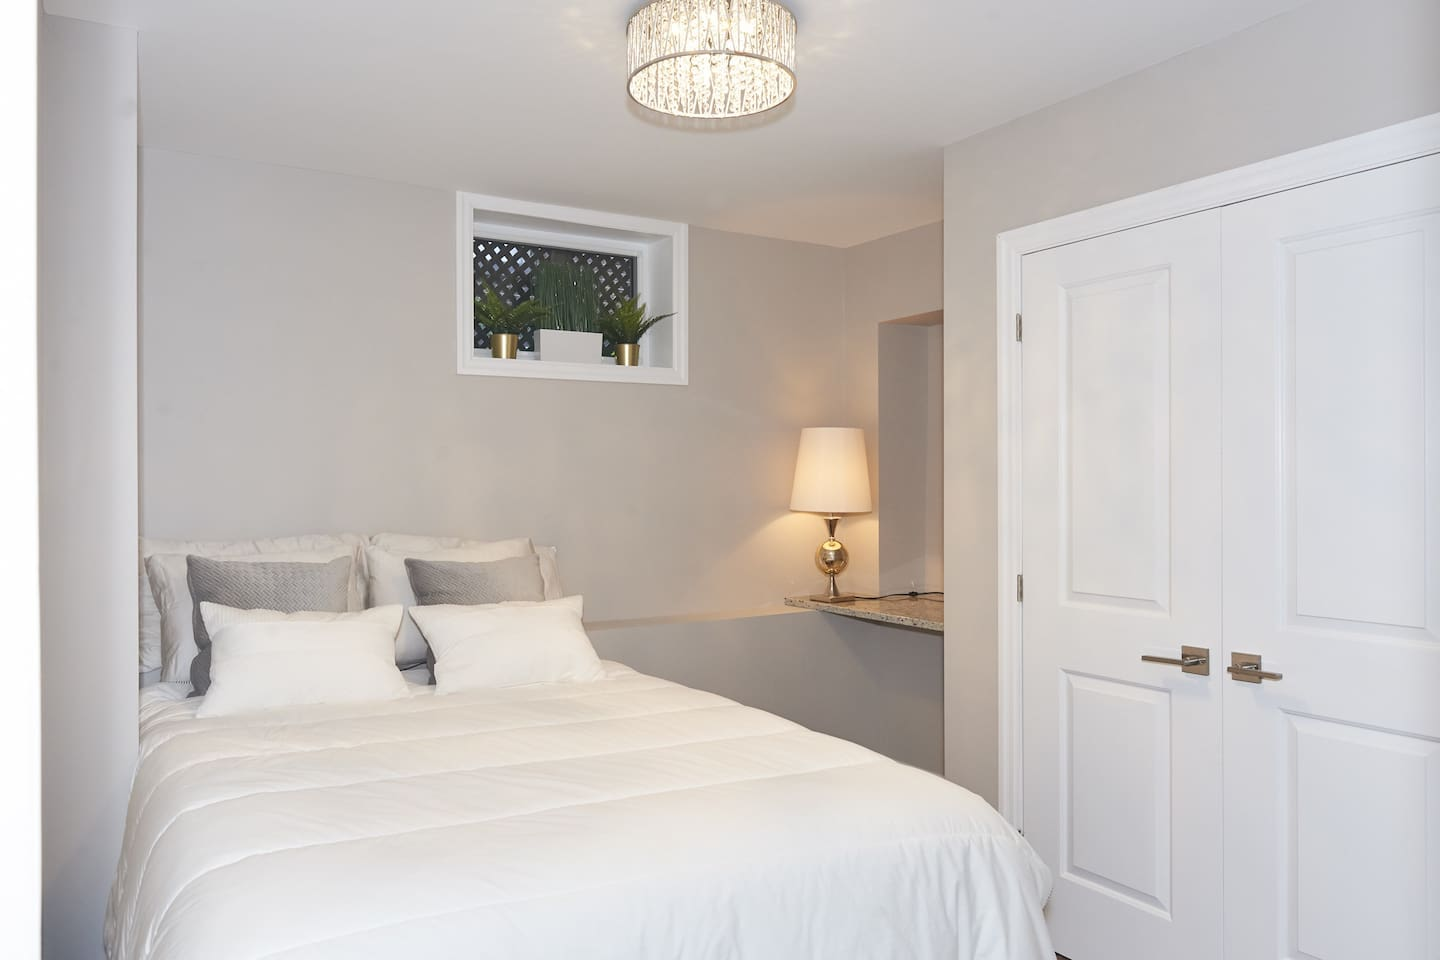 This spacious bedroom has a queen size bed with a comfortable and light duvet, a beautiful granite desk, as well as a full size closet and hangers.